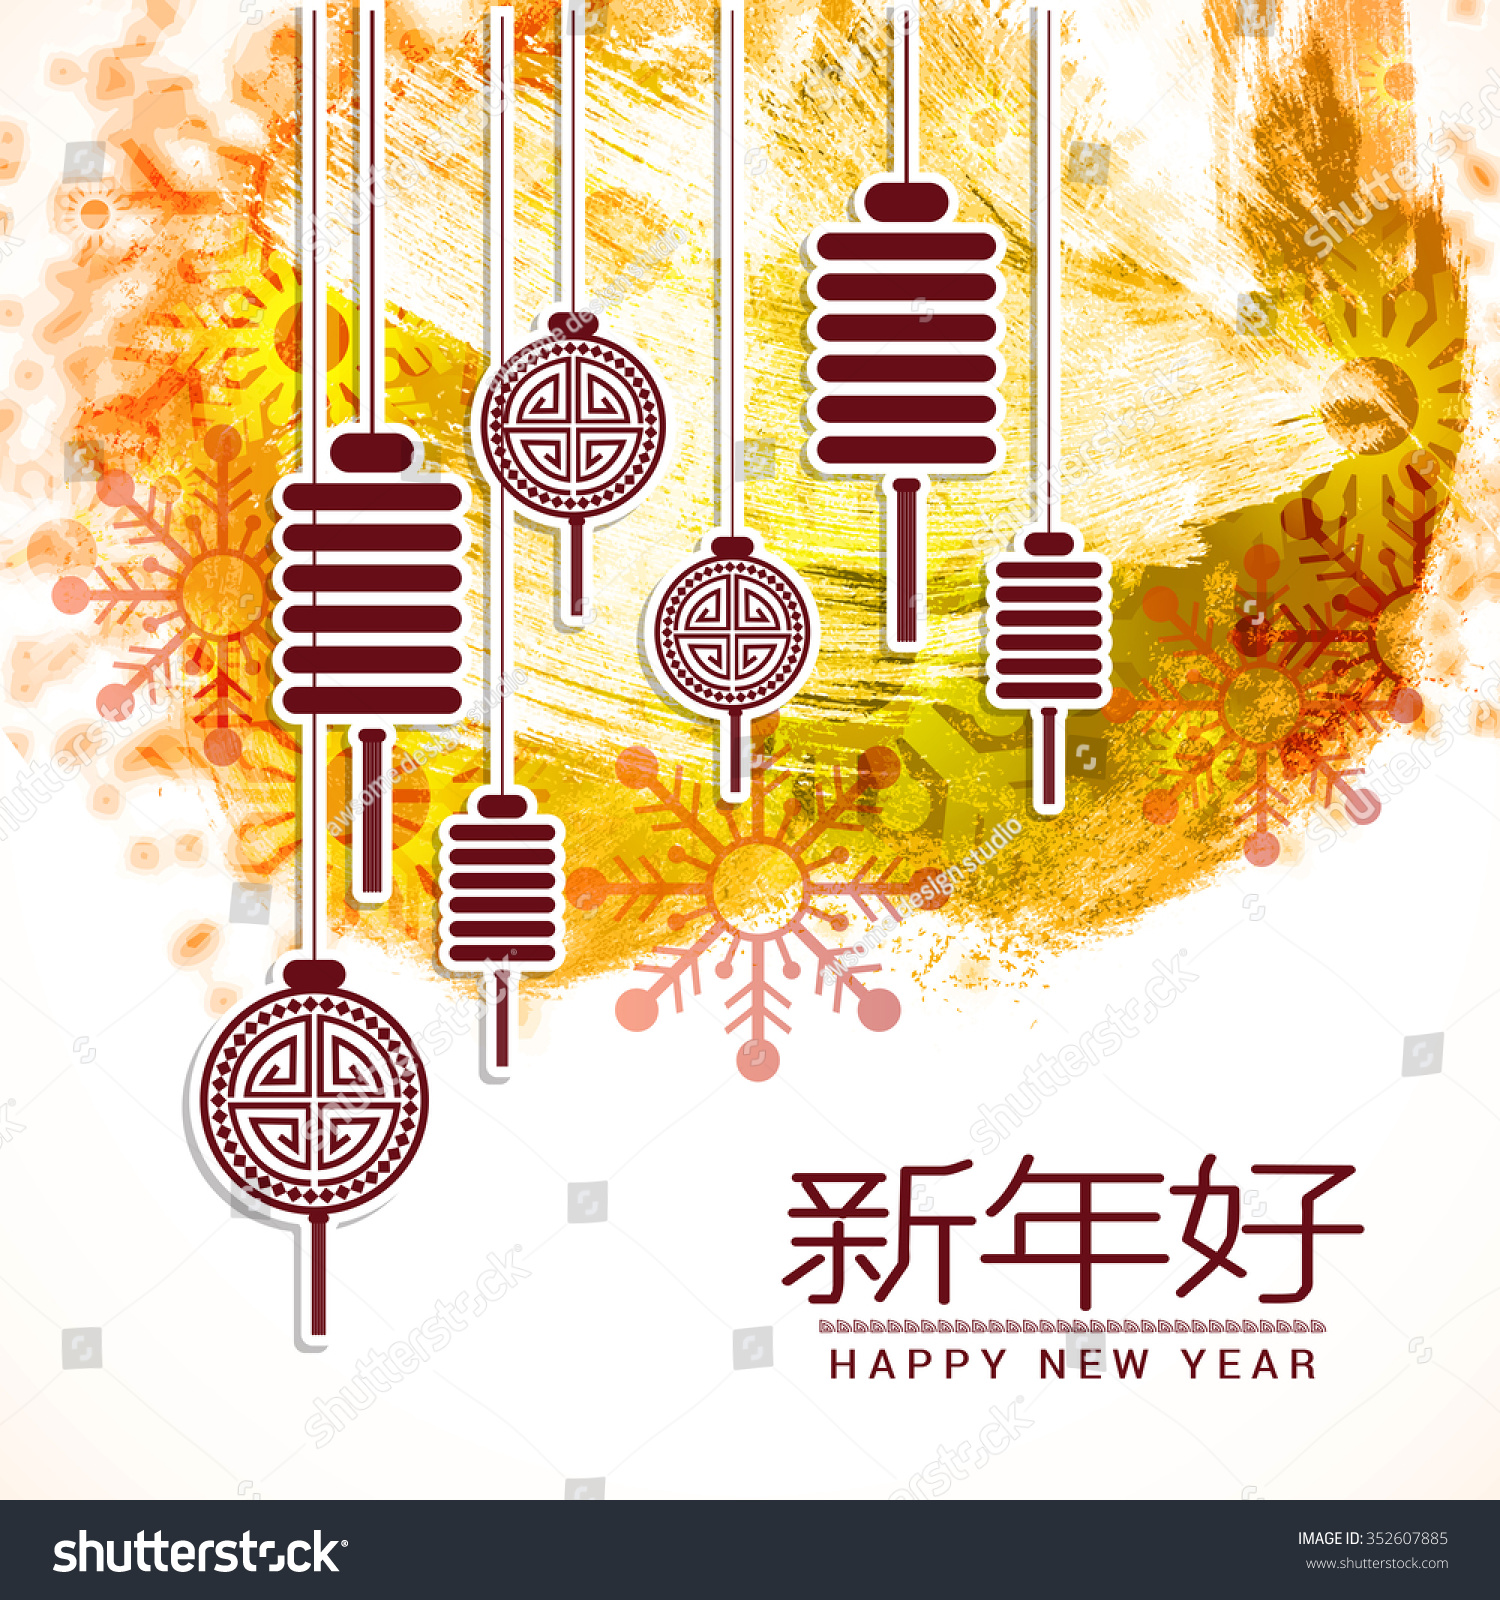 Chinese Calendar Illustration : Vector illustration abstract chinese new year stock